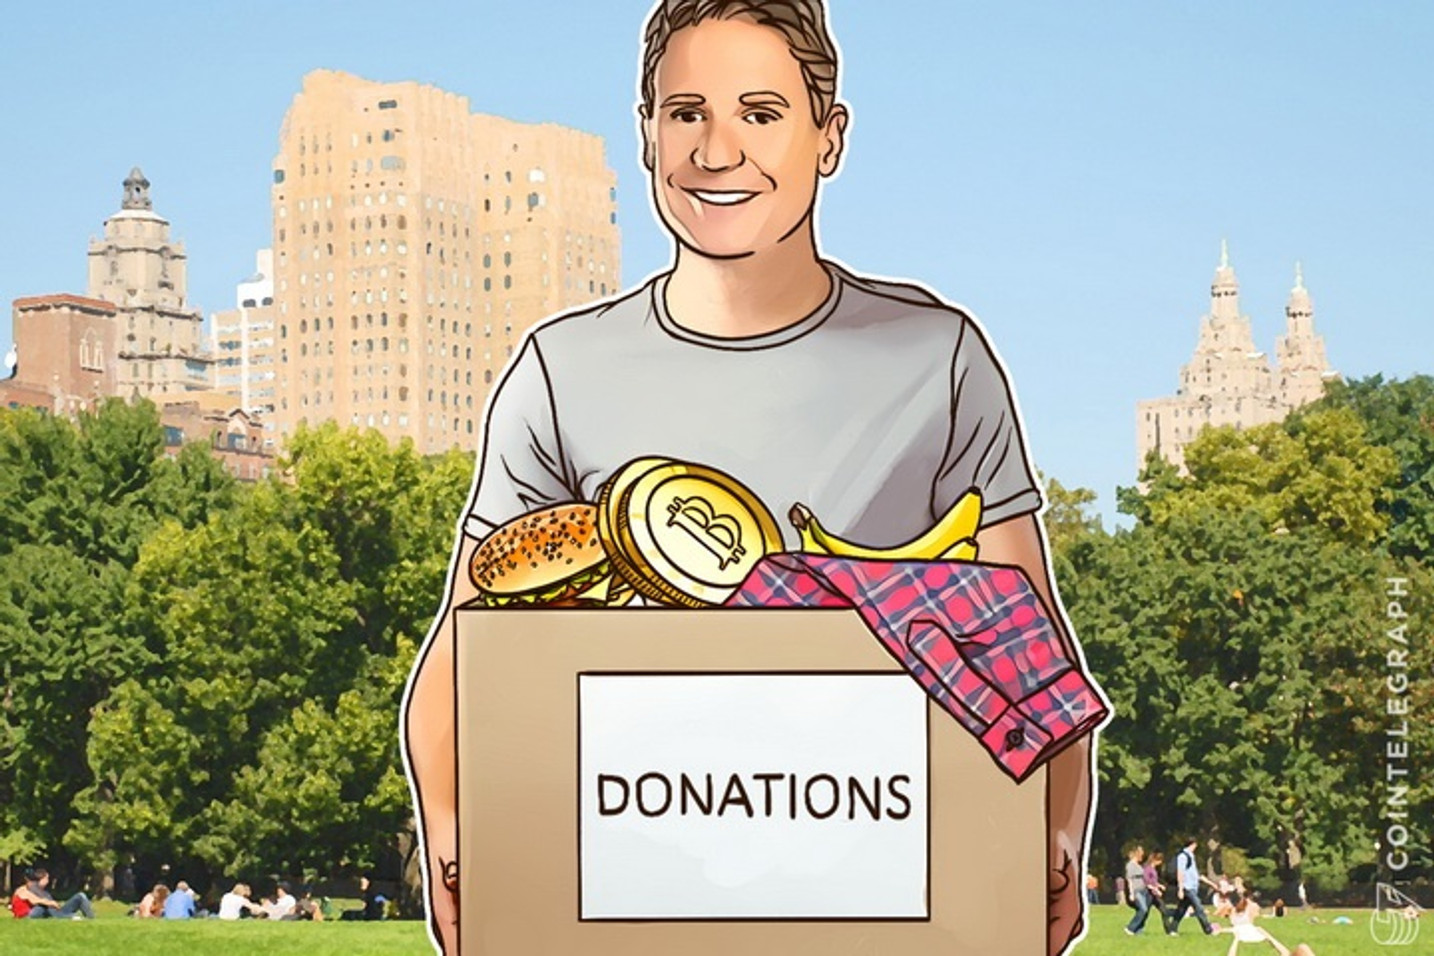 Gary Johnson Wins Libertarian Nomination, Only Major Candidate to Accept Bitcoin Donations